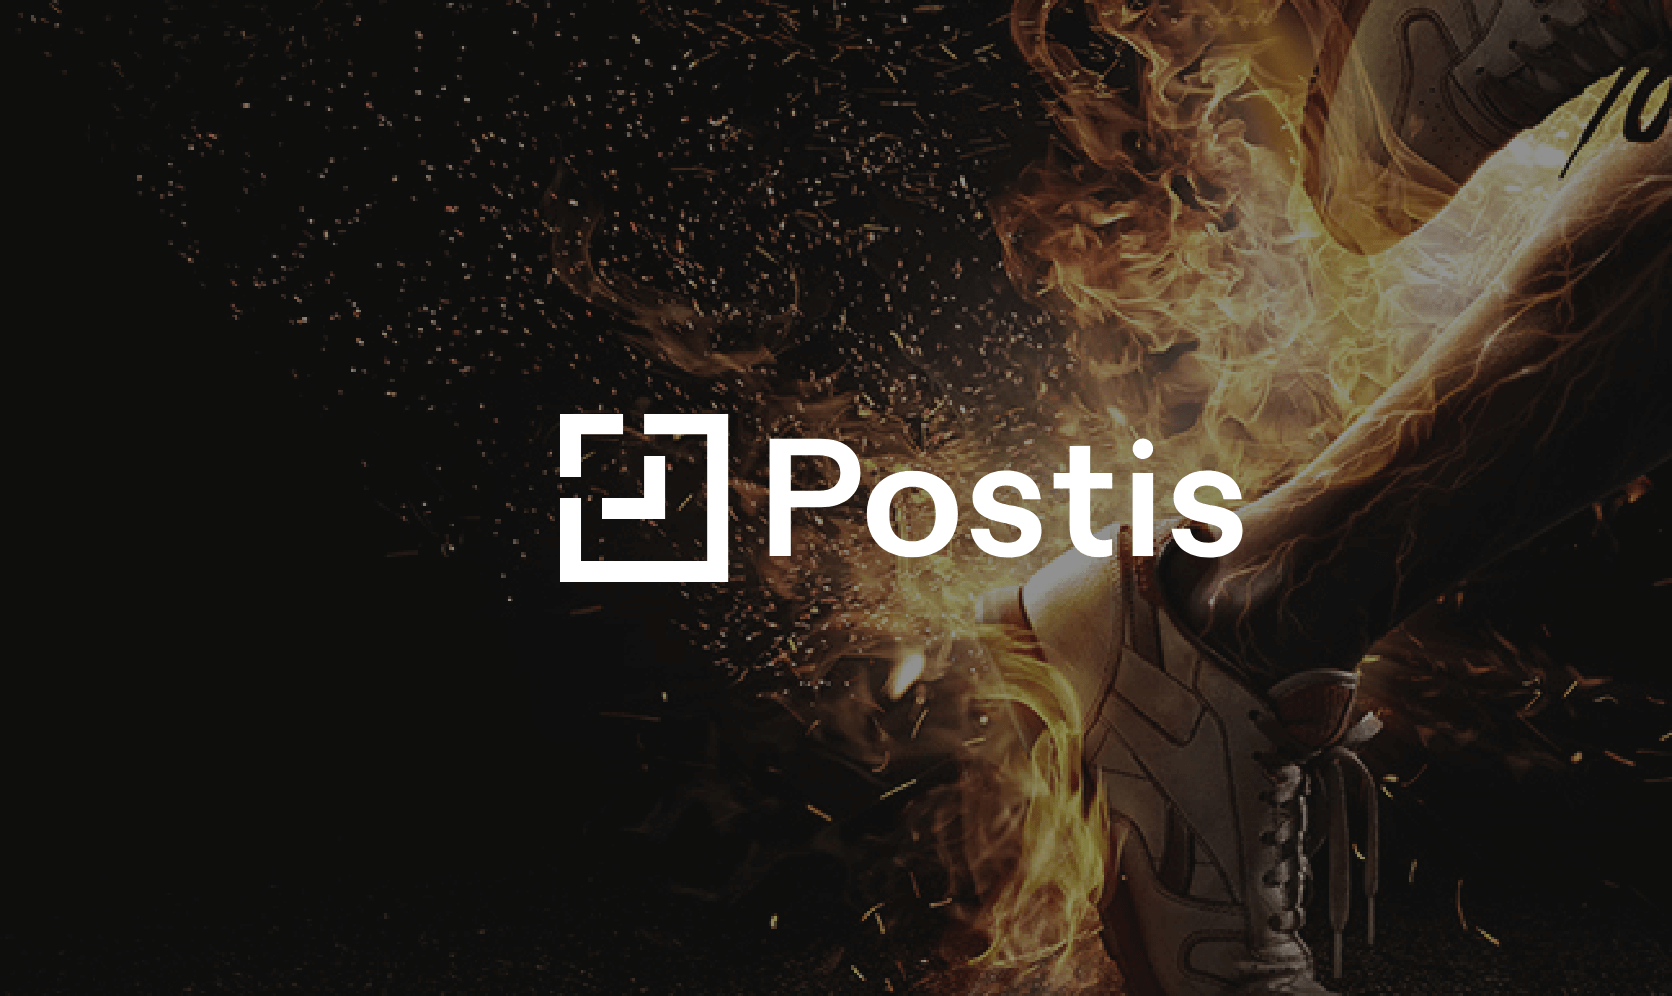 postis logo overlaid on an image of running shoes on fire